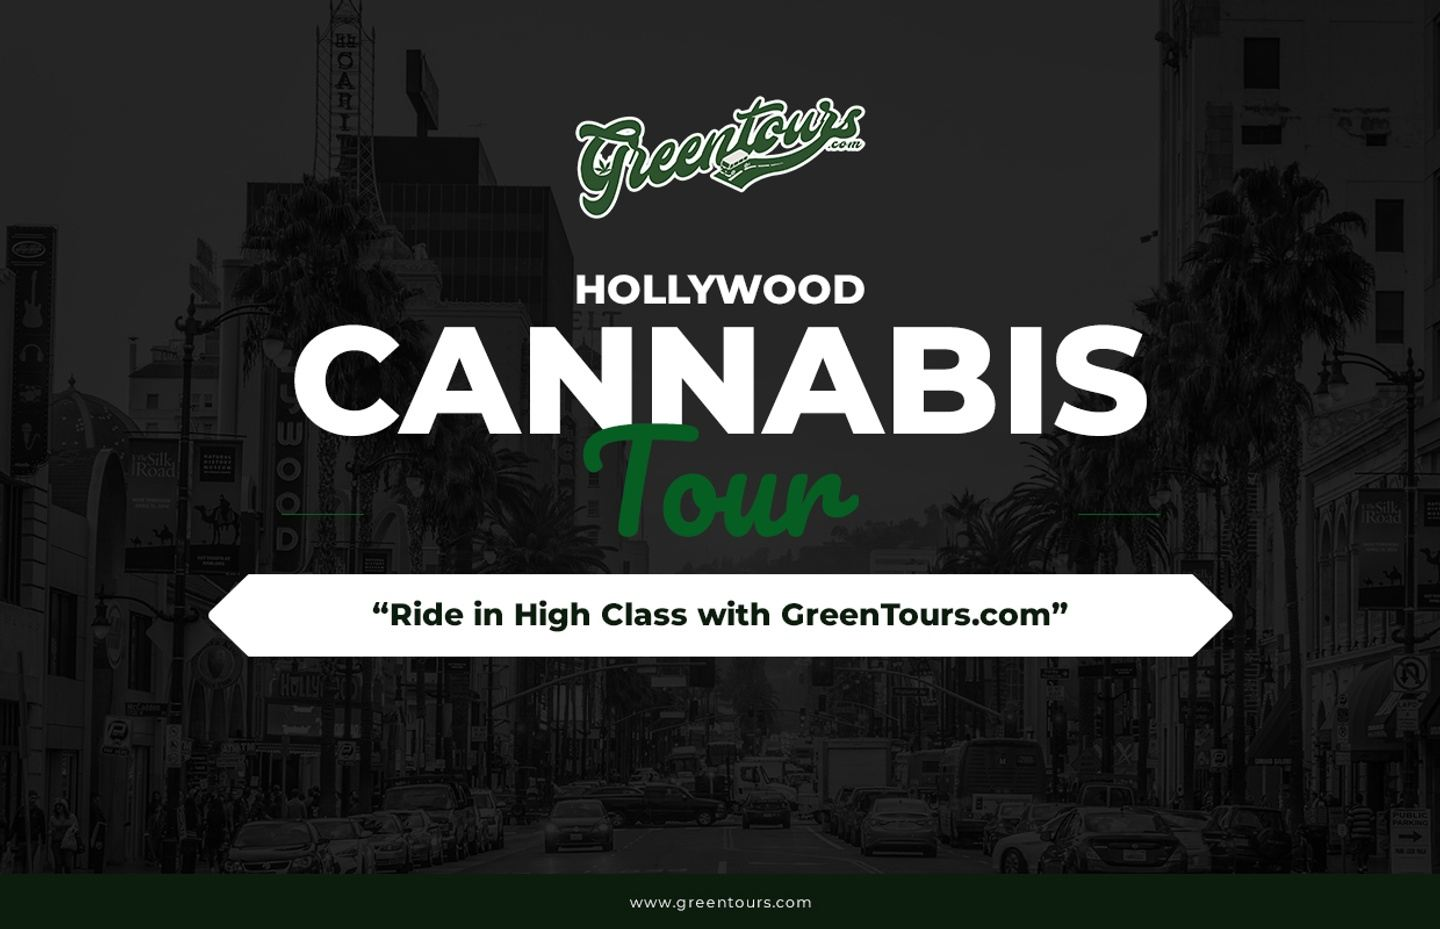 Hollywood Cannabis Tour - 4:30pm (2.5 hrs)